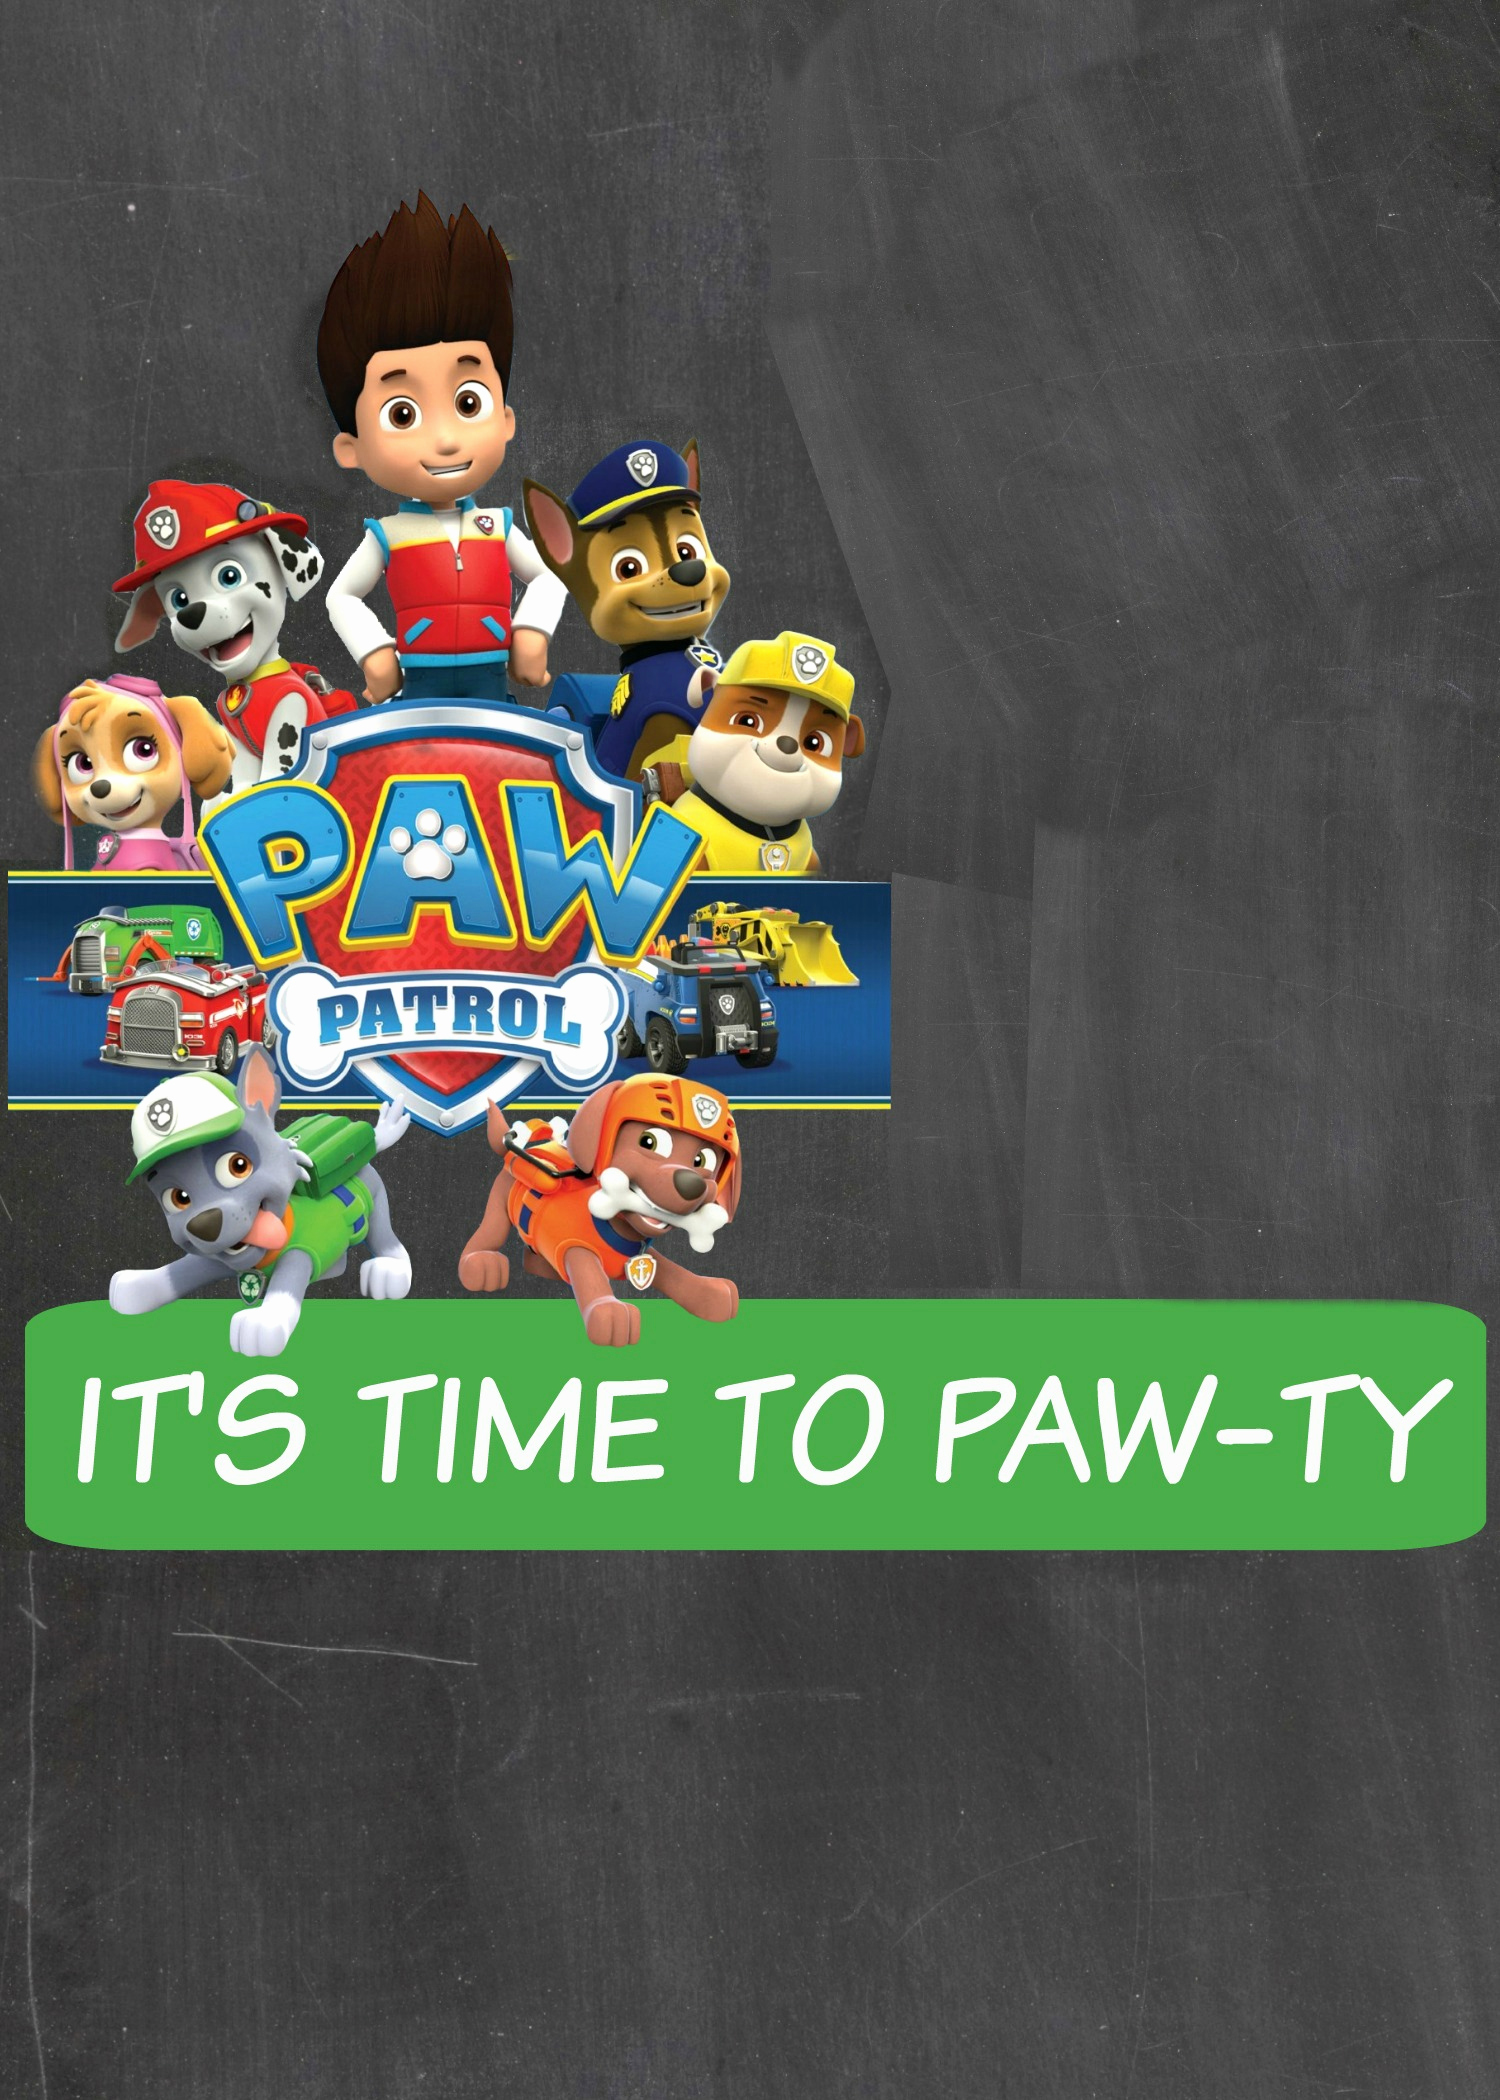 Paw Patrol Invitation Templates New How to Make A Paw Patrol Digital Invitation